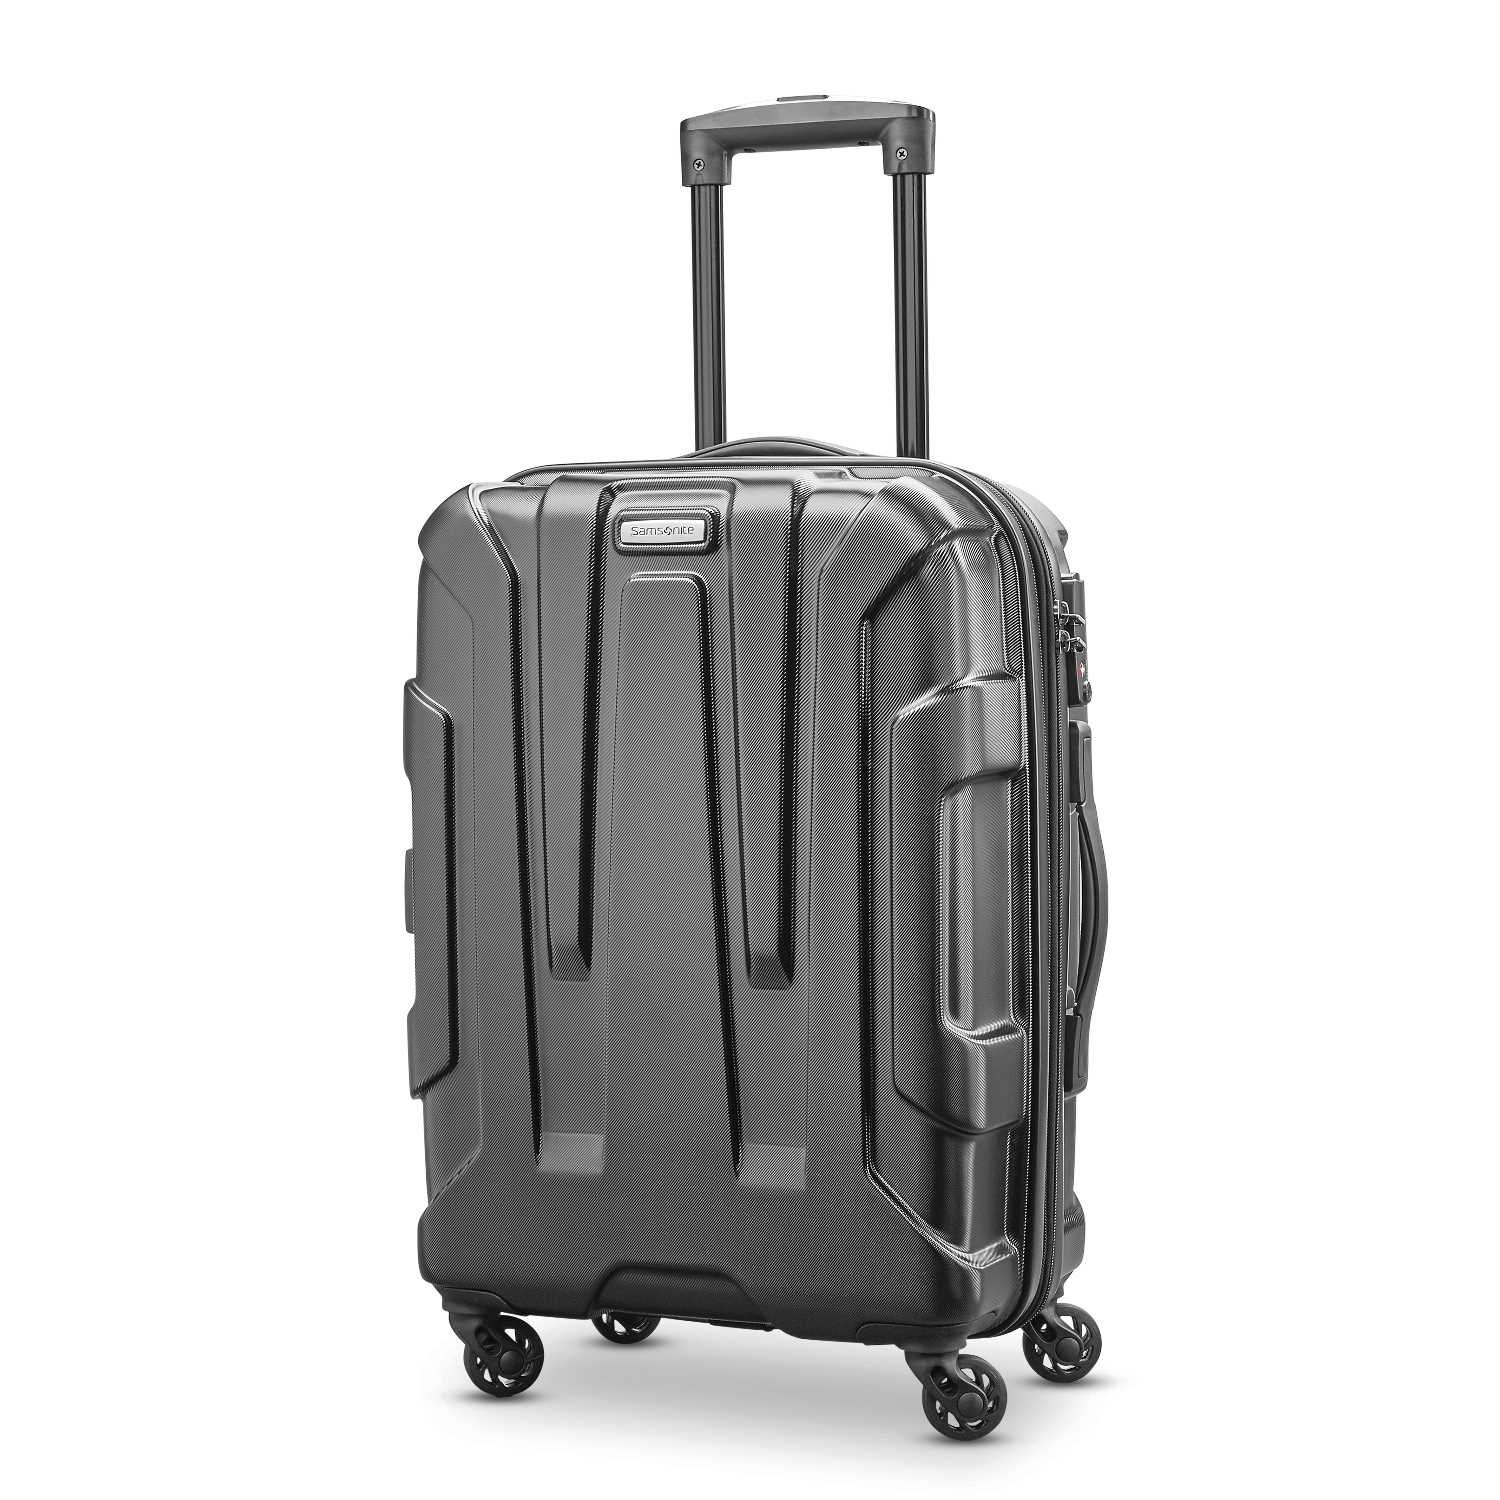 Samsonite Centric Expandable Hardside Carry On Luggage with Spinner Wheels, 20 Inch, Black